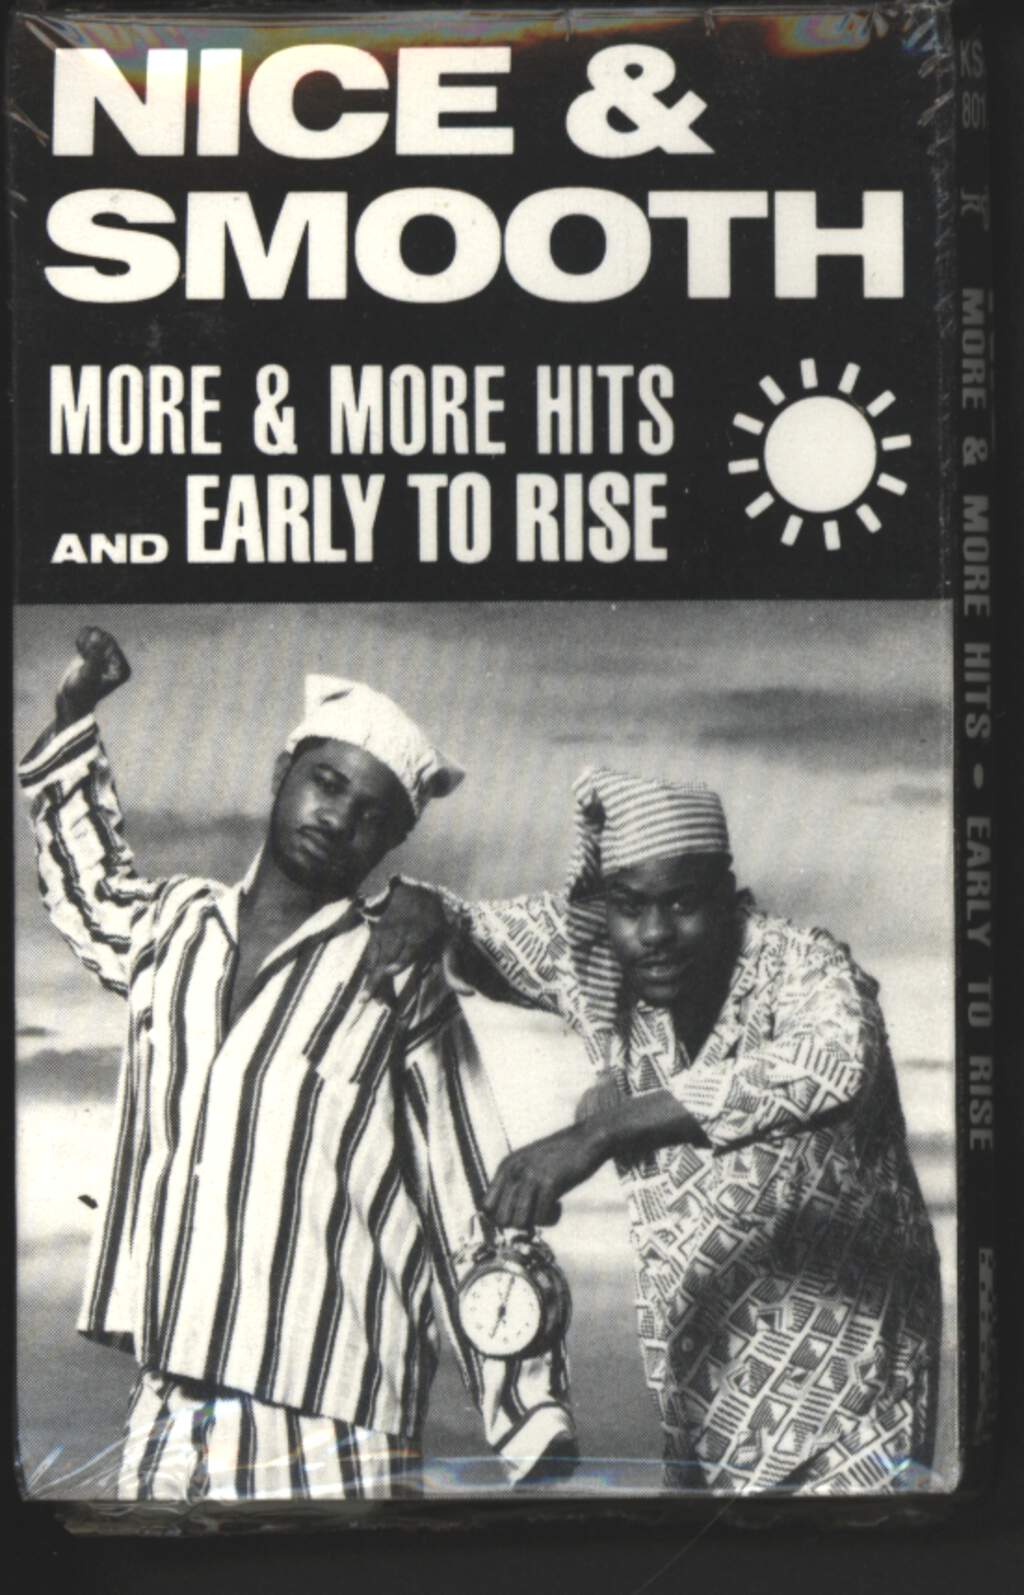 Nice & Smooth: More & More Hits / Early To Rise, Tape